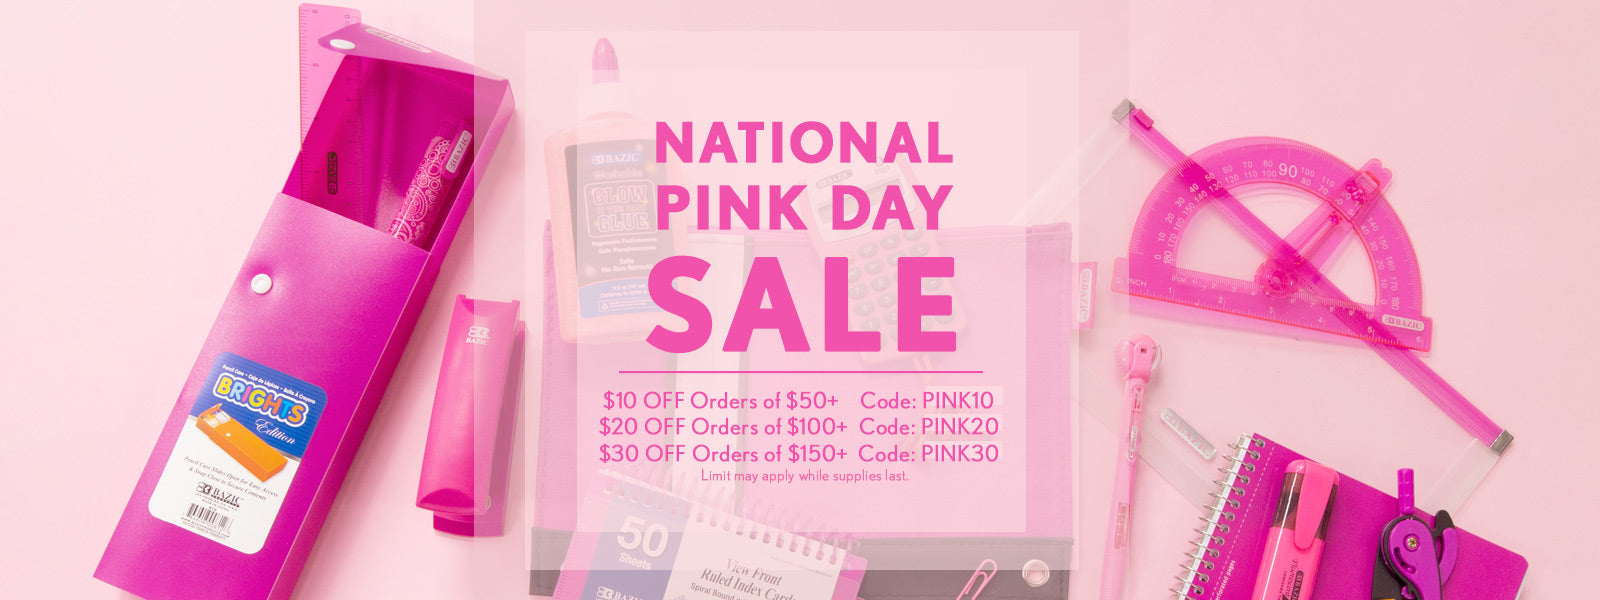 National Pink Day